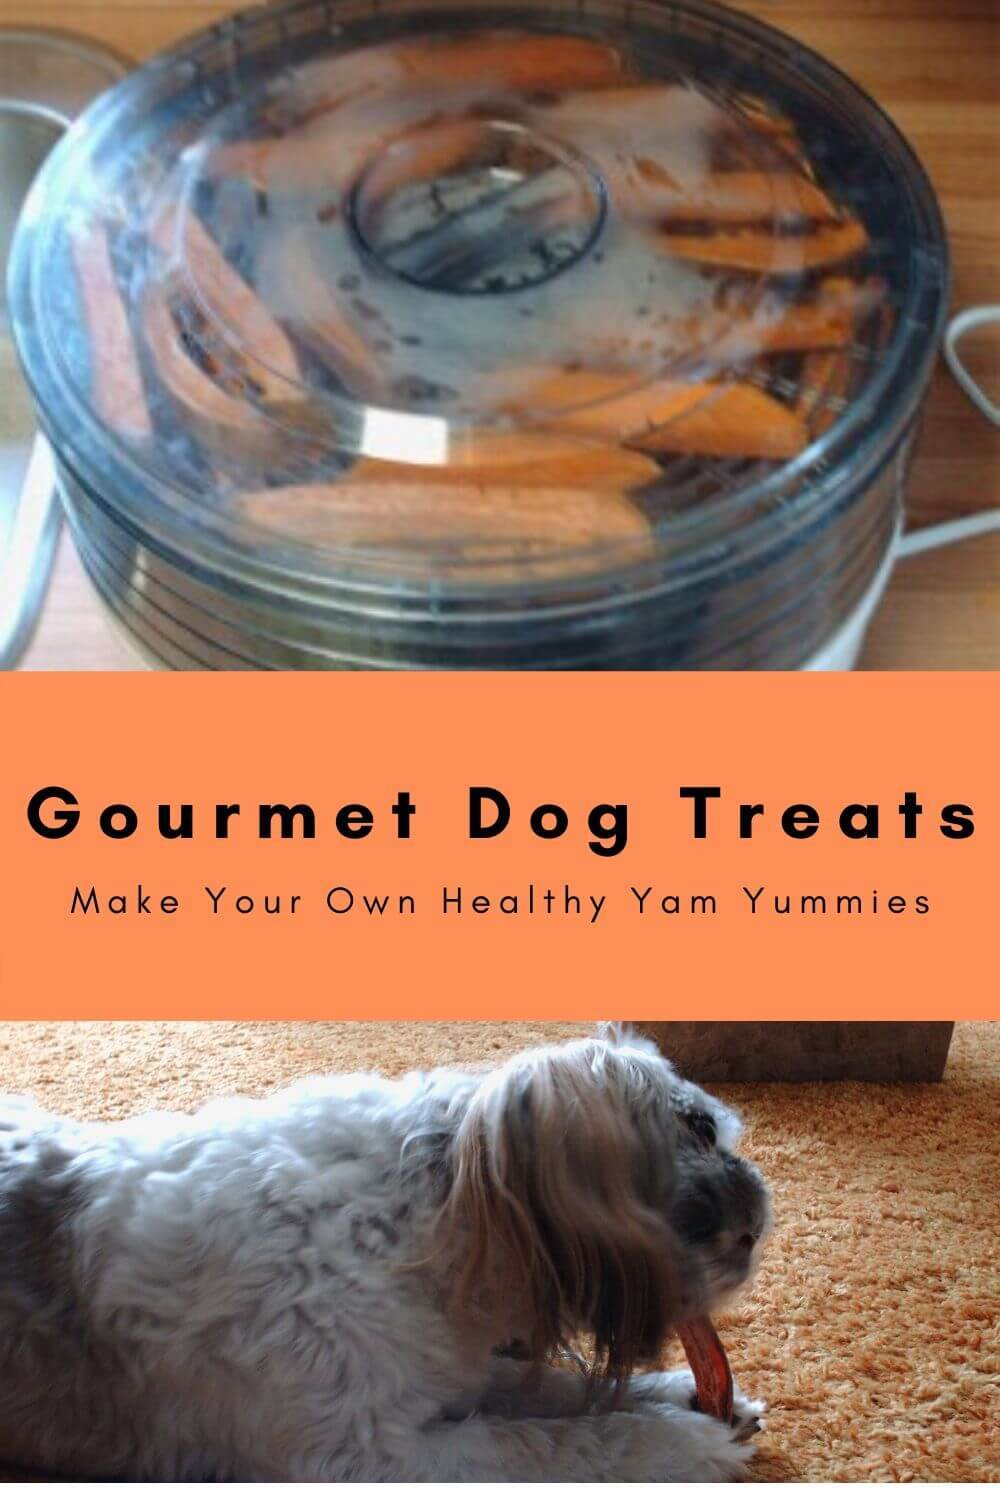 Gourmet dog treats - yam yums for dogs